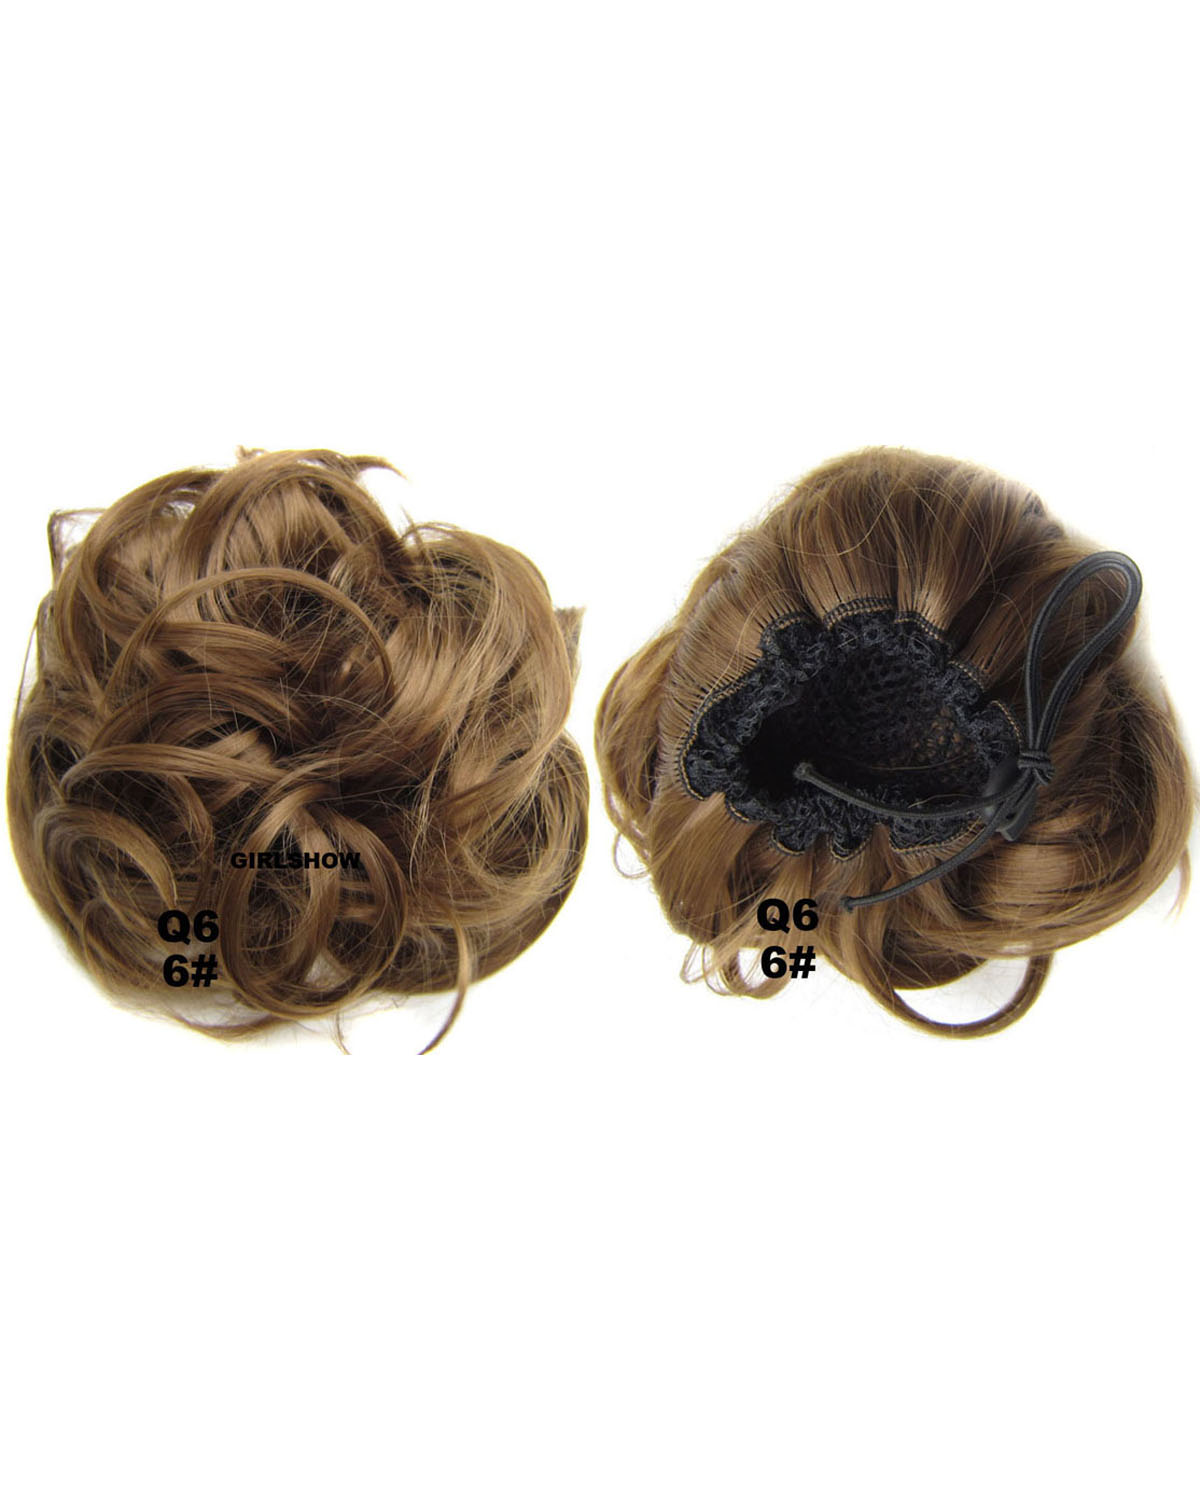 Ladies Newly and Popular Curly and Short Hair Buns Drawstring Synthetic Hair Extension Bride Scrunchies 6#